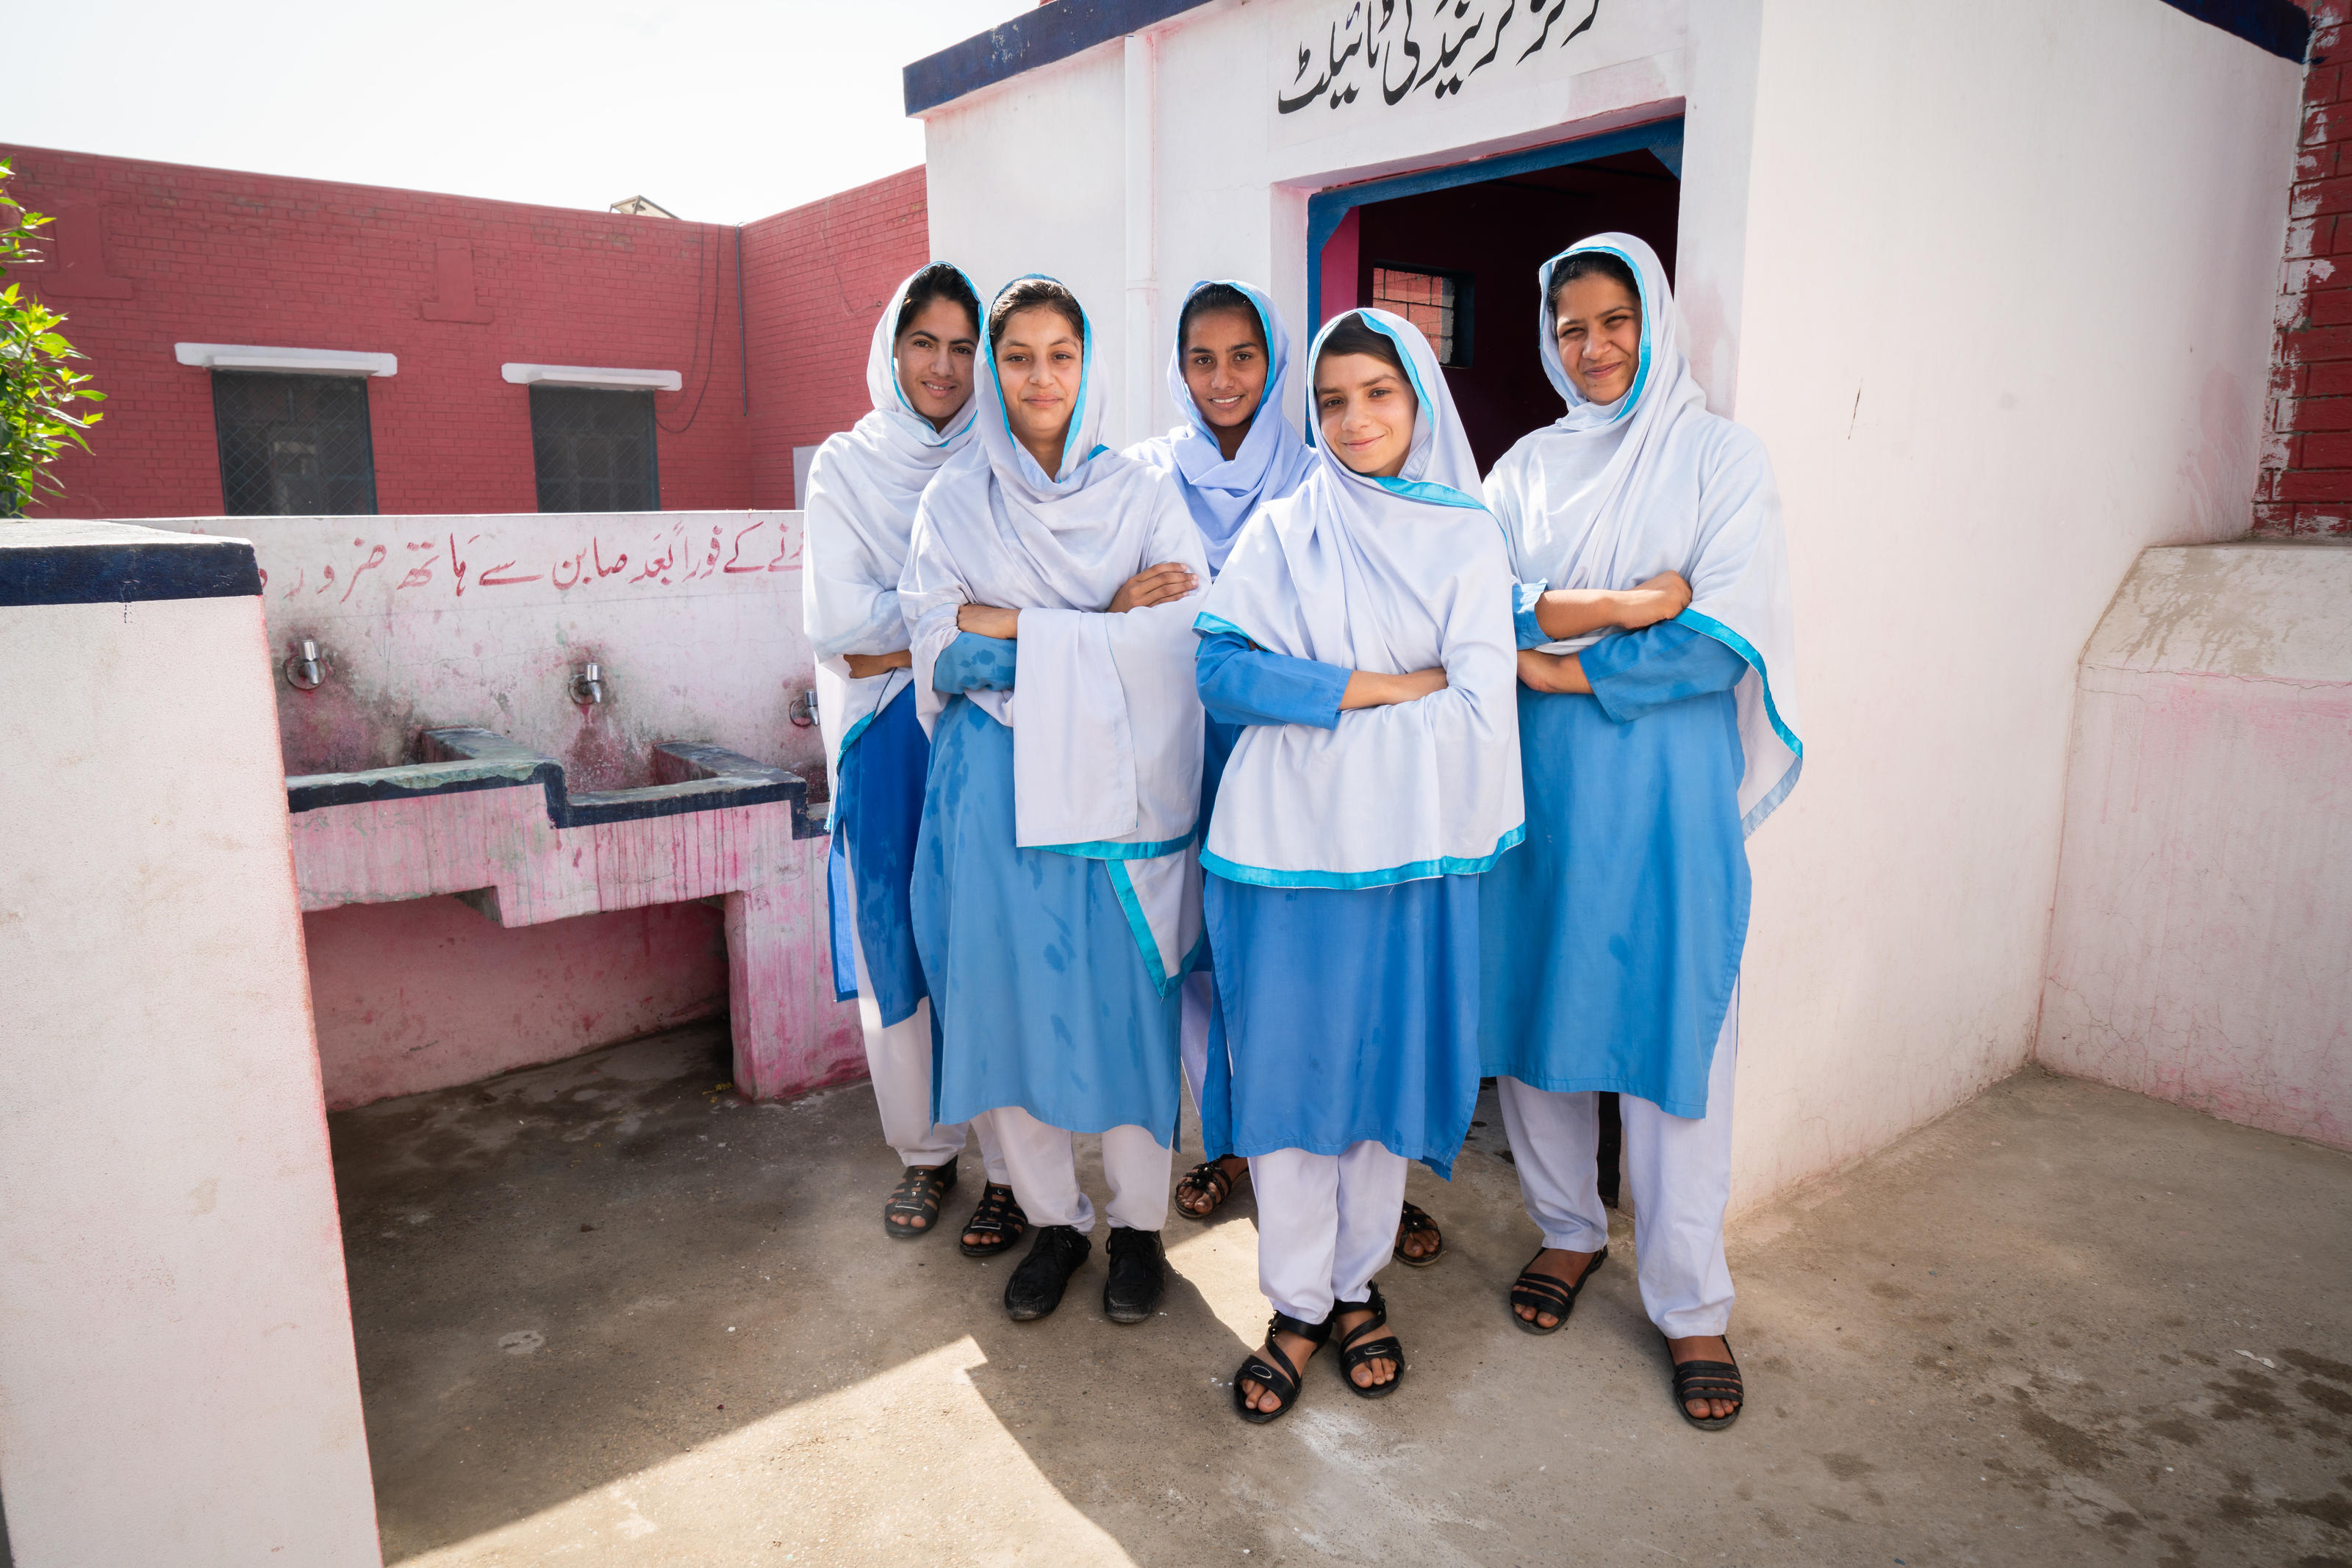 WASH group members, (left to right) Kiran, Mahwish, Saba, Ramsha and Iqra, in front of the WaterAid installed girls' friendly toilet in Government Girls High School Chak, Pakistan.